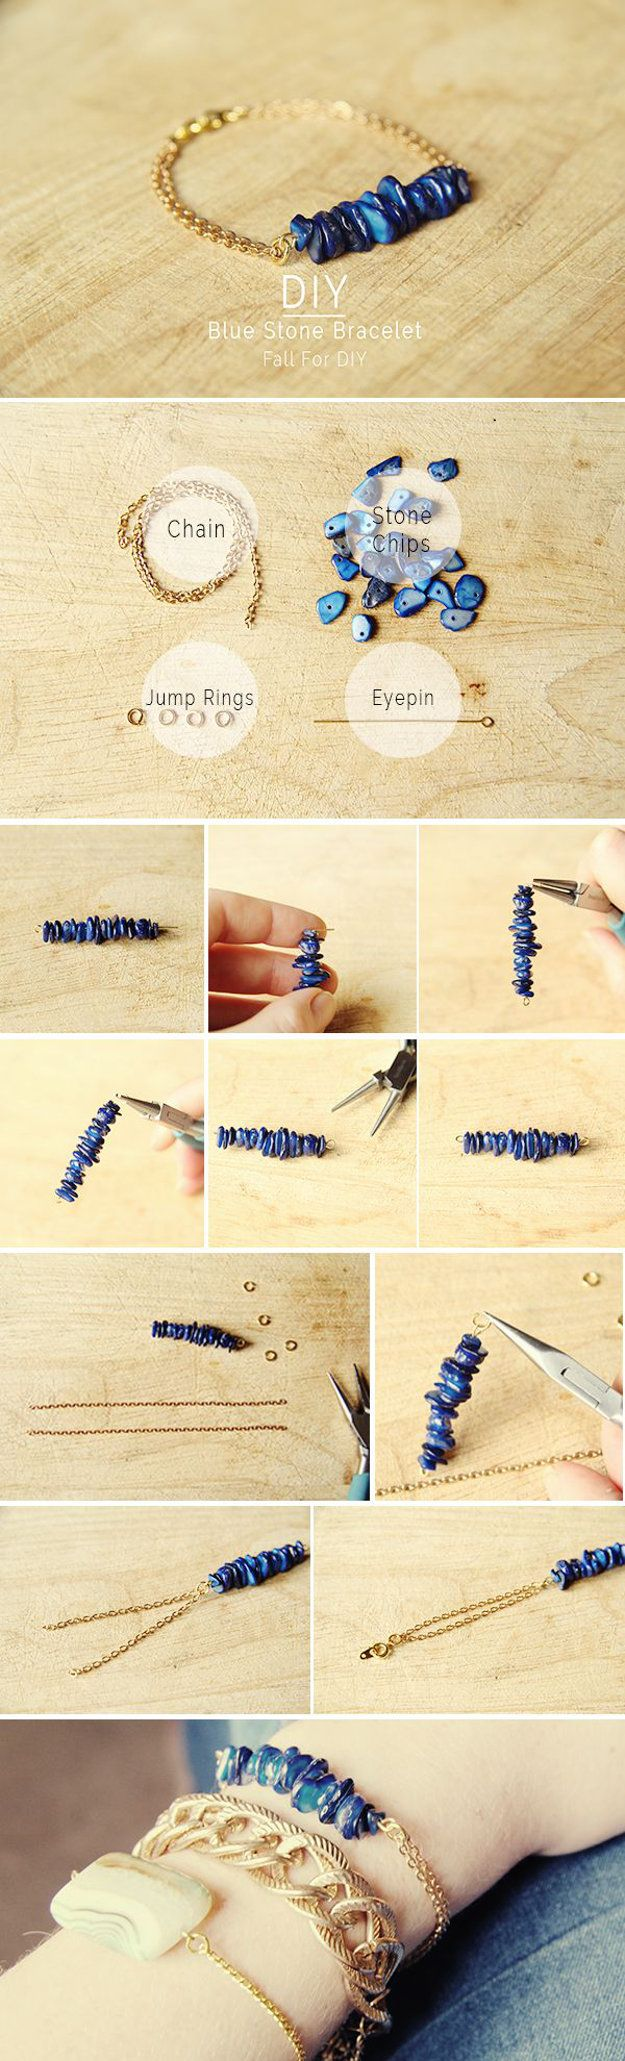 DIY Blue Stone Bracelet | The Perfect Gift to Make Your BFF for Graduation, Base...